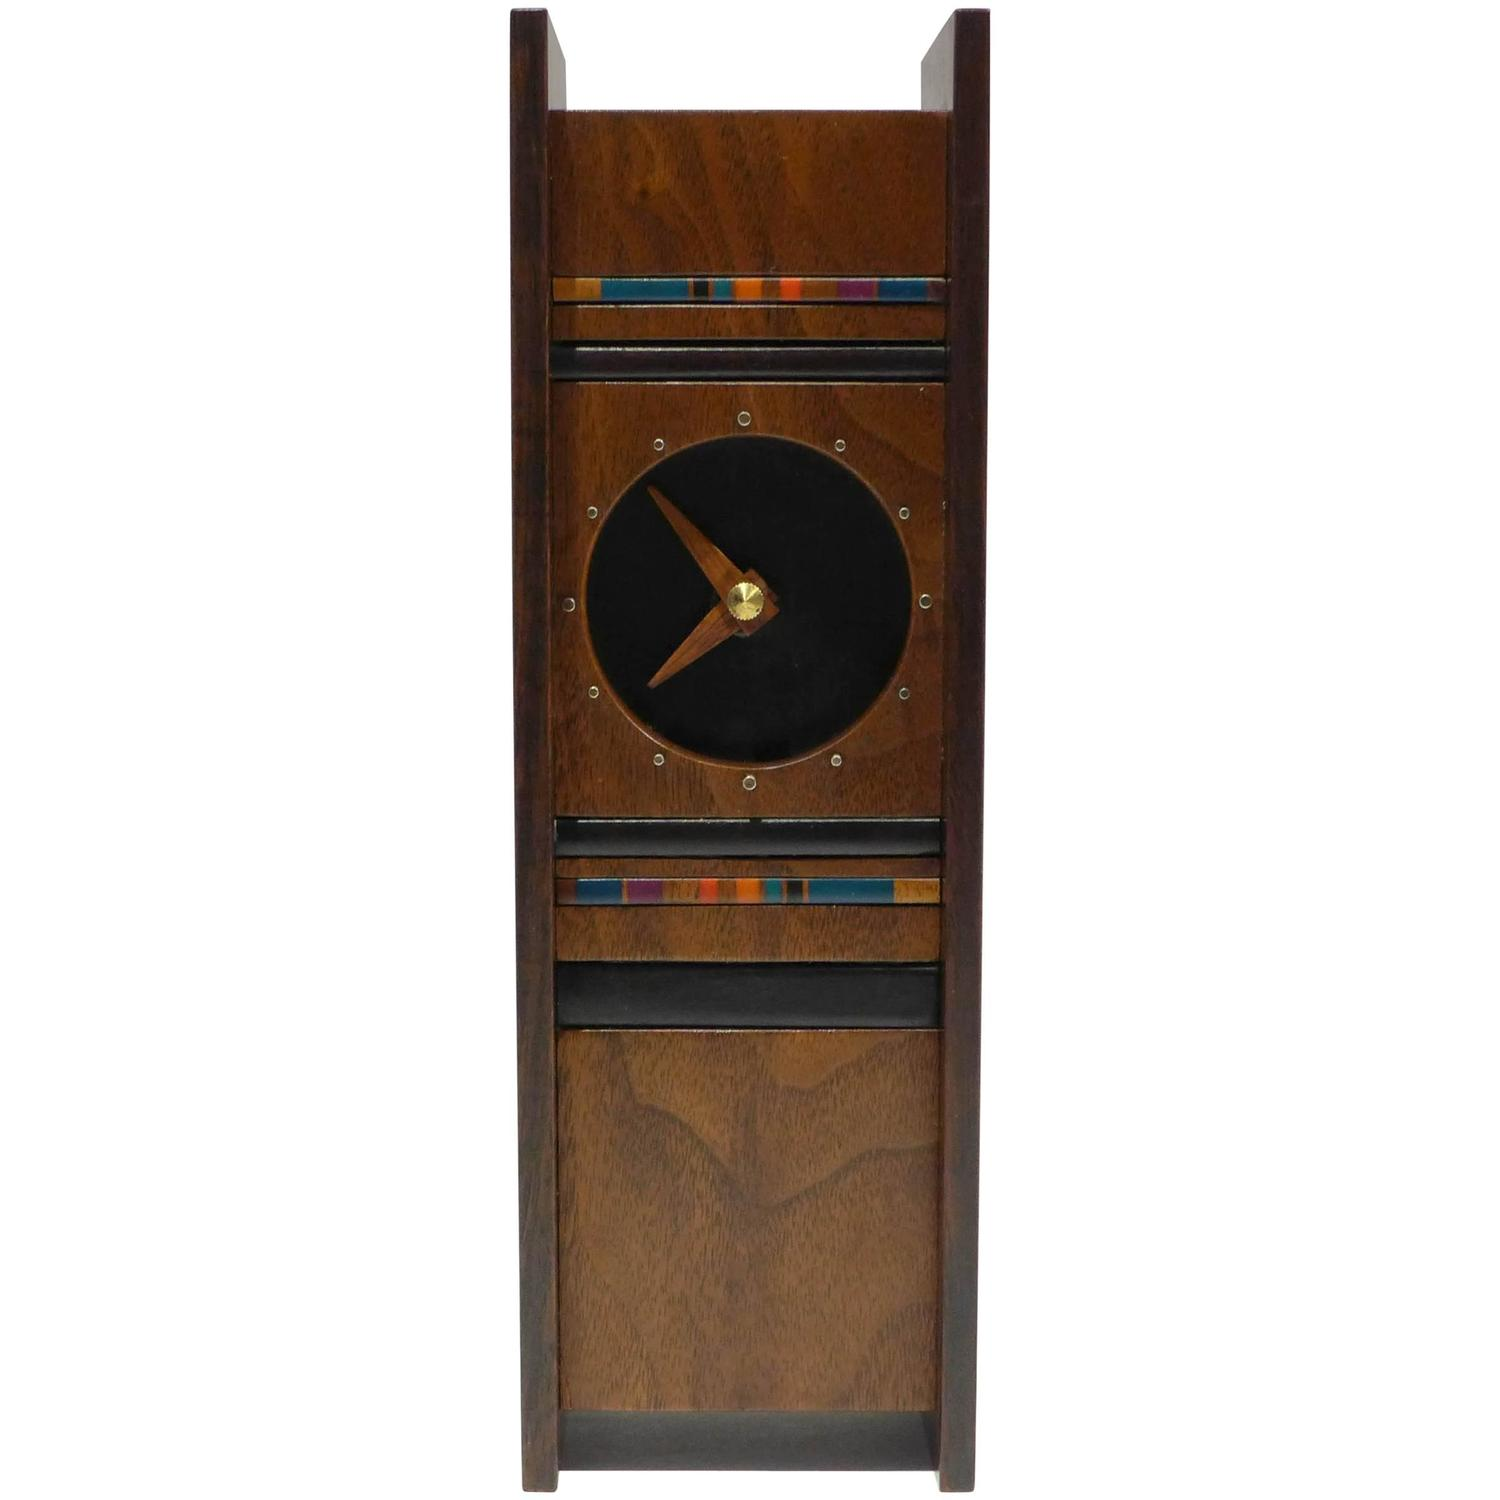 Robert Mckeown Table Clock For Sale At 1stdibs